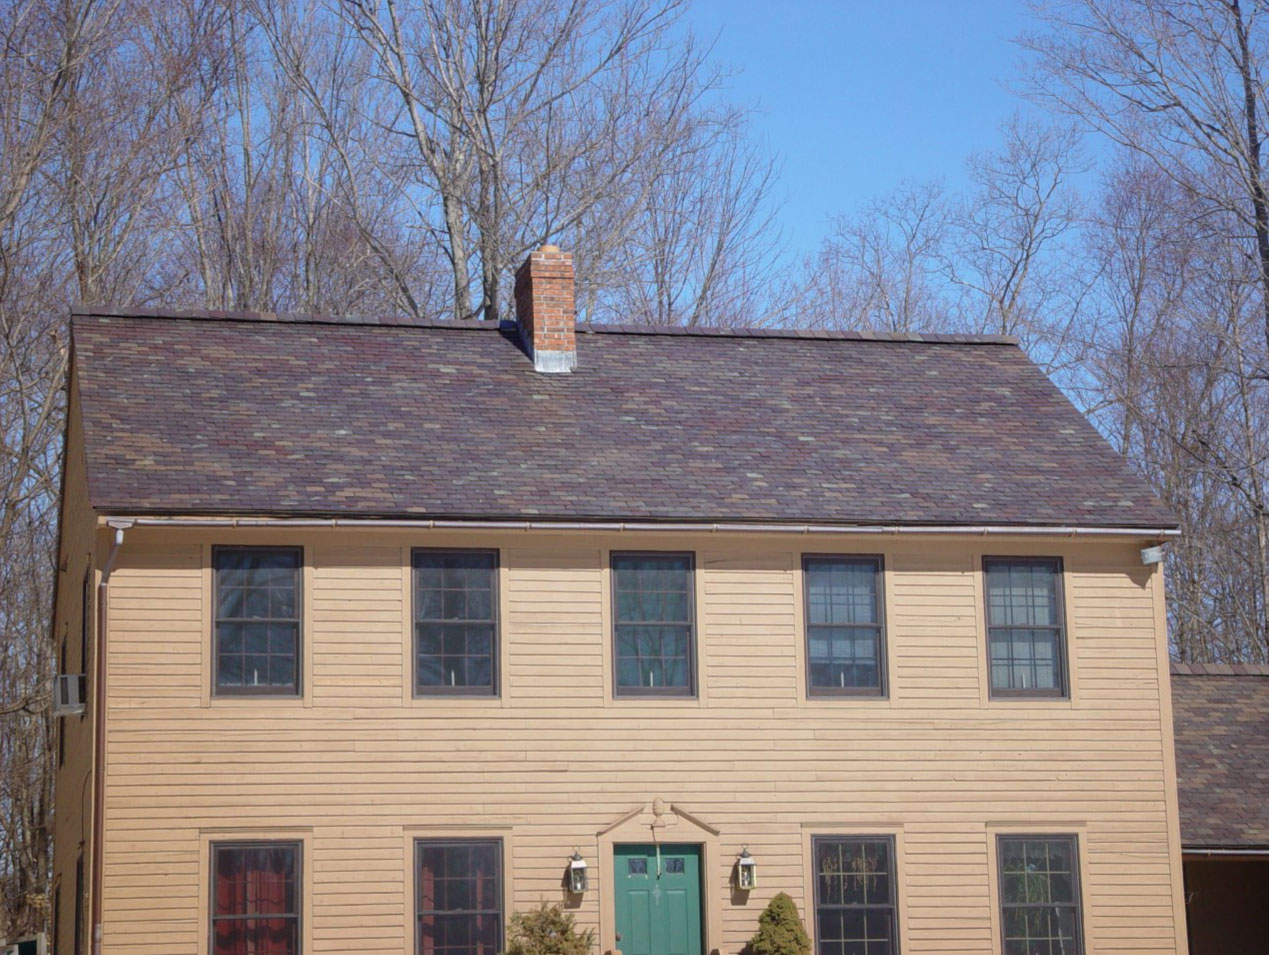 Vermont colonial style home with slate roof.